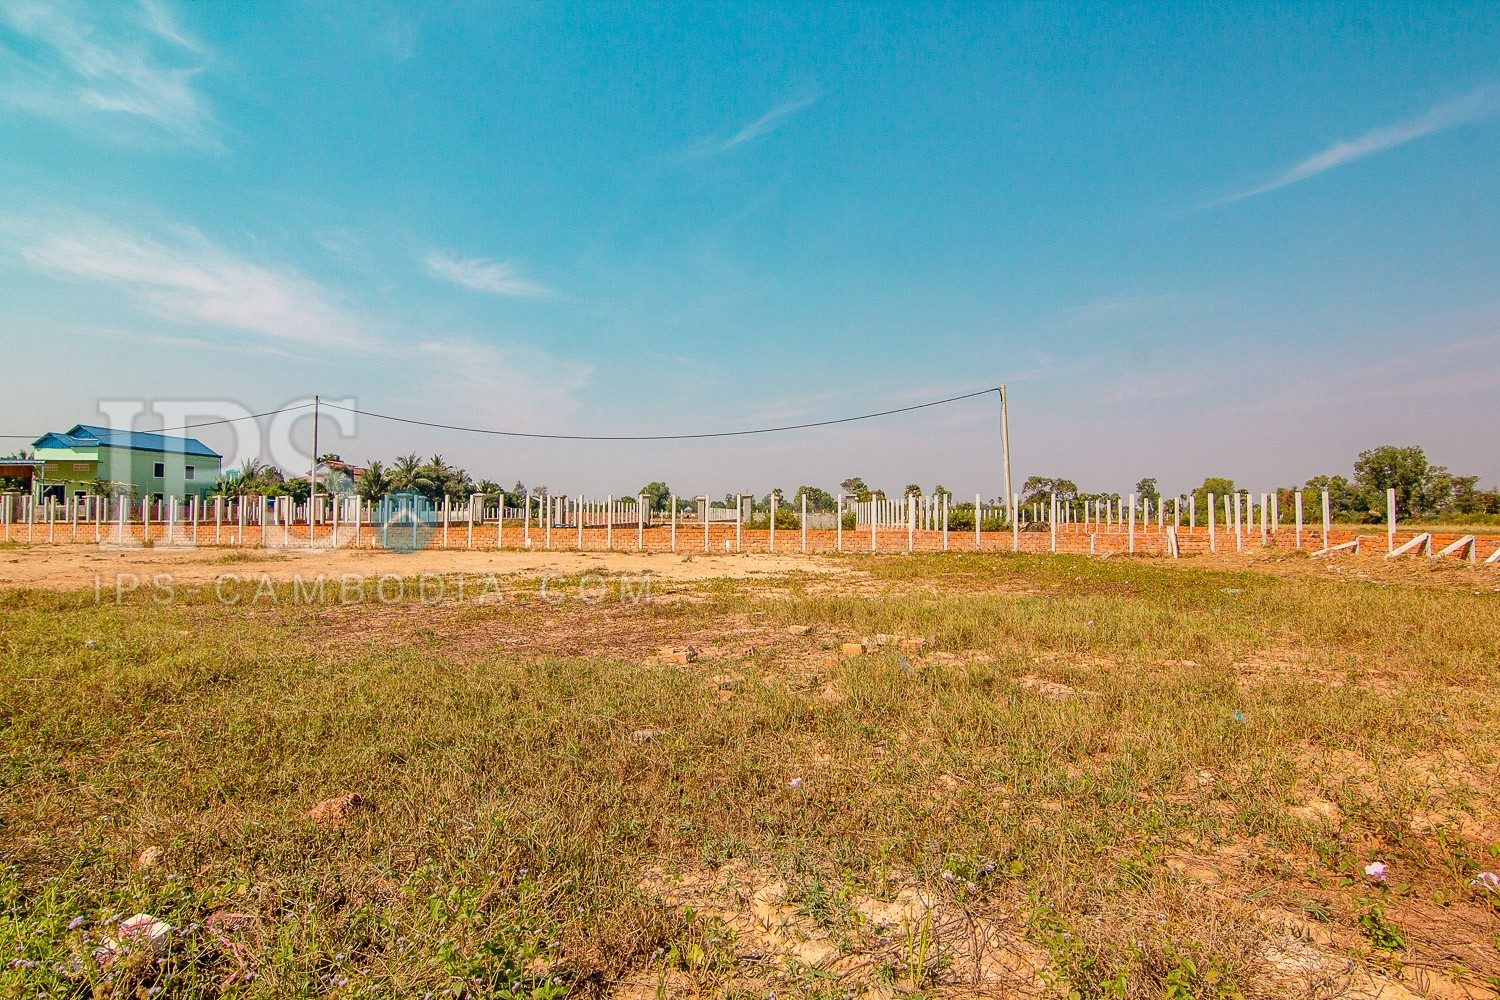 120 Sqm Residential Land For Sale - Svay Thom, Siem Reap